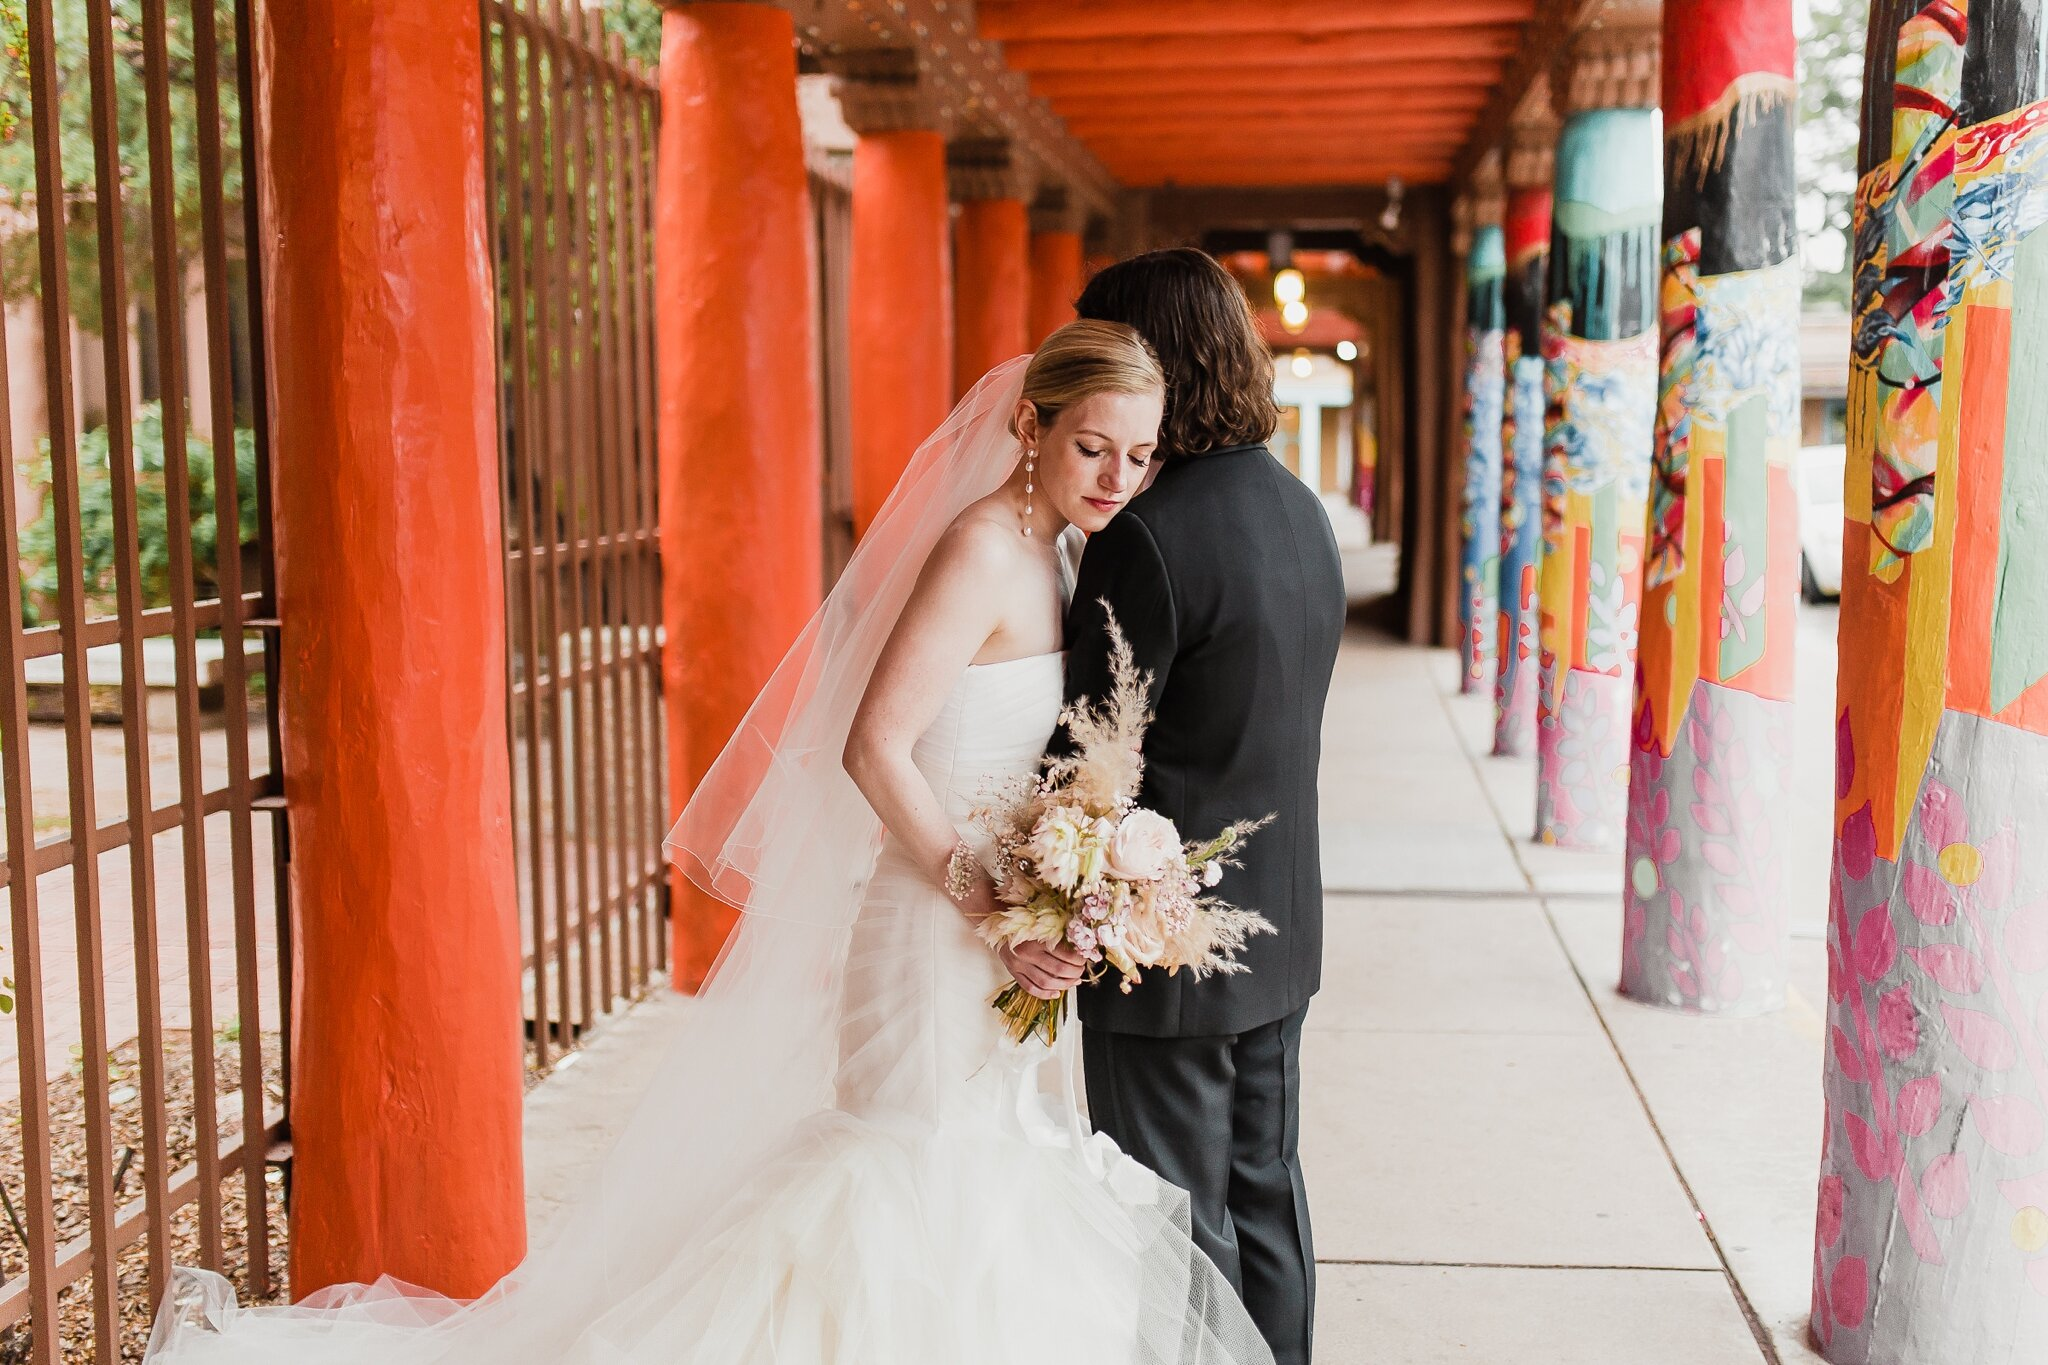 Alicia+lucia+photography+-+albuquerque+wedding+photographer+-+santa+fe+wedding+photography+-+new+mexico+wedding+photographer+-+new+mexico+wedding+-+la+fonda+wedding+-+la+fonda+on+the+plaza+-+santa+fe+wedding+-+brooklyn+bride_0085.jpg